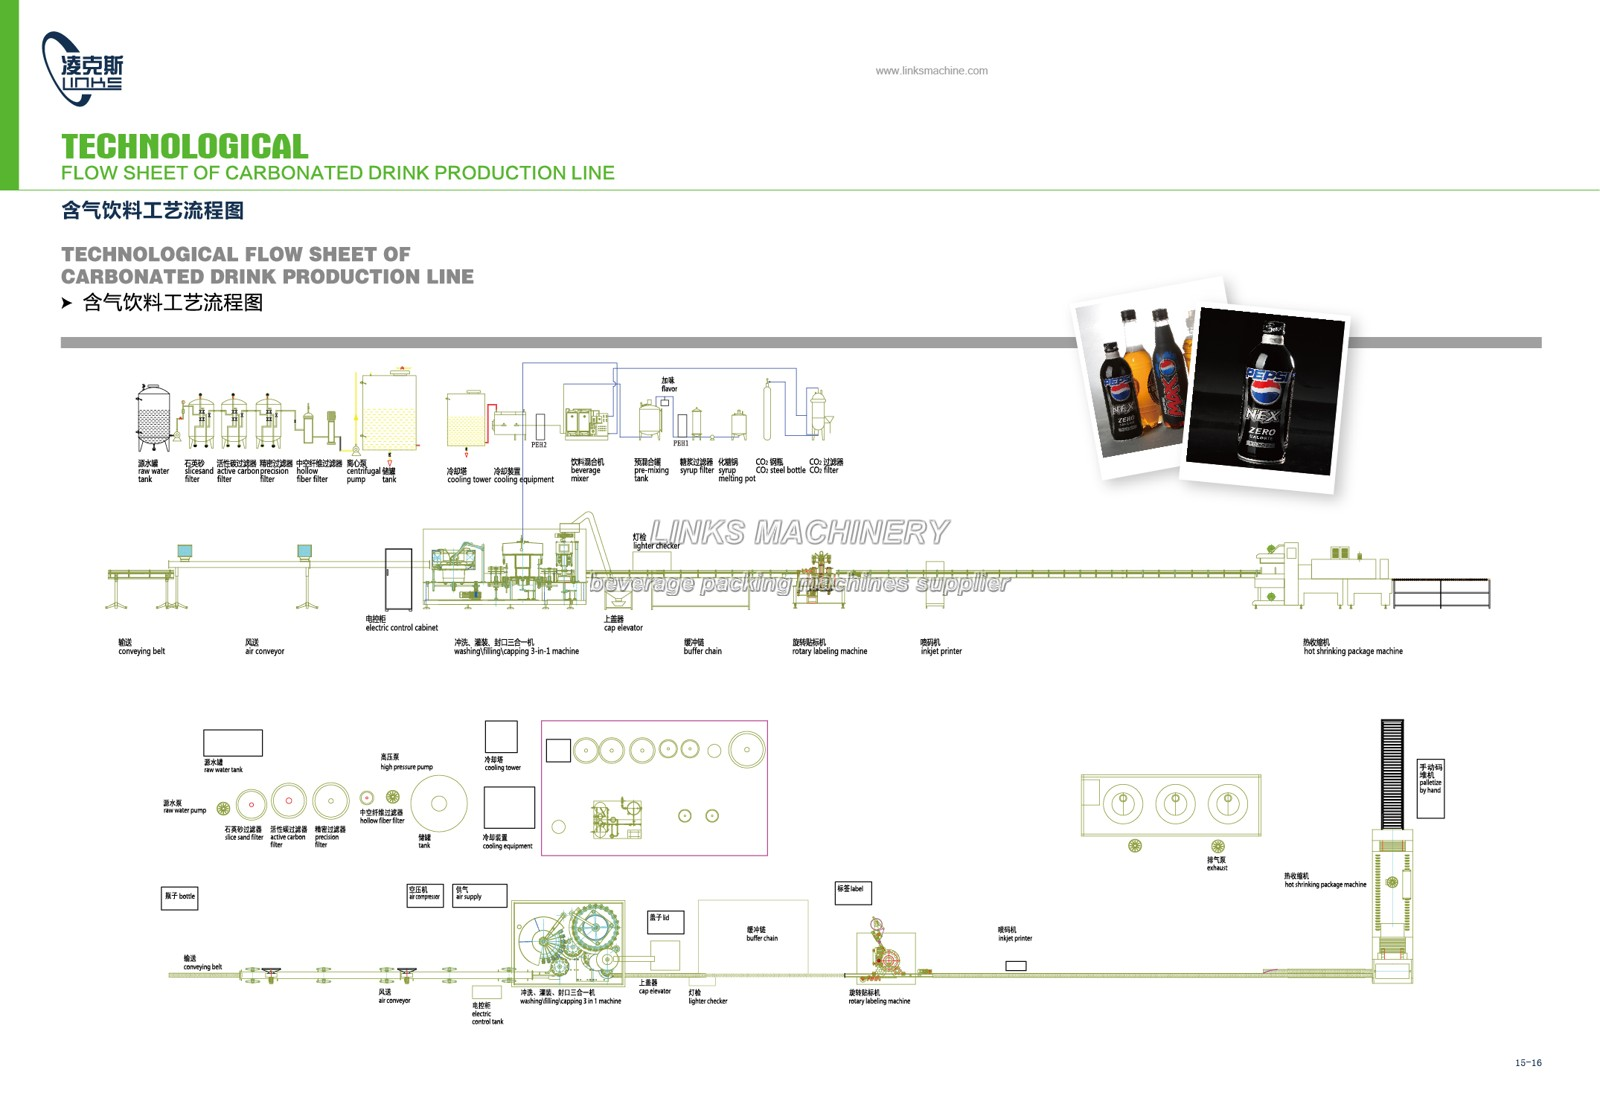 Carbonated Drinks Processing Layout